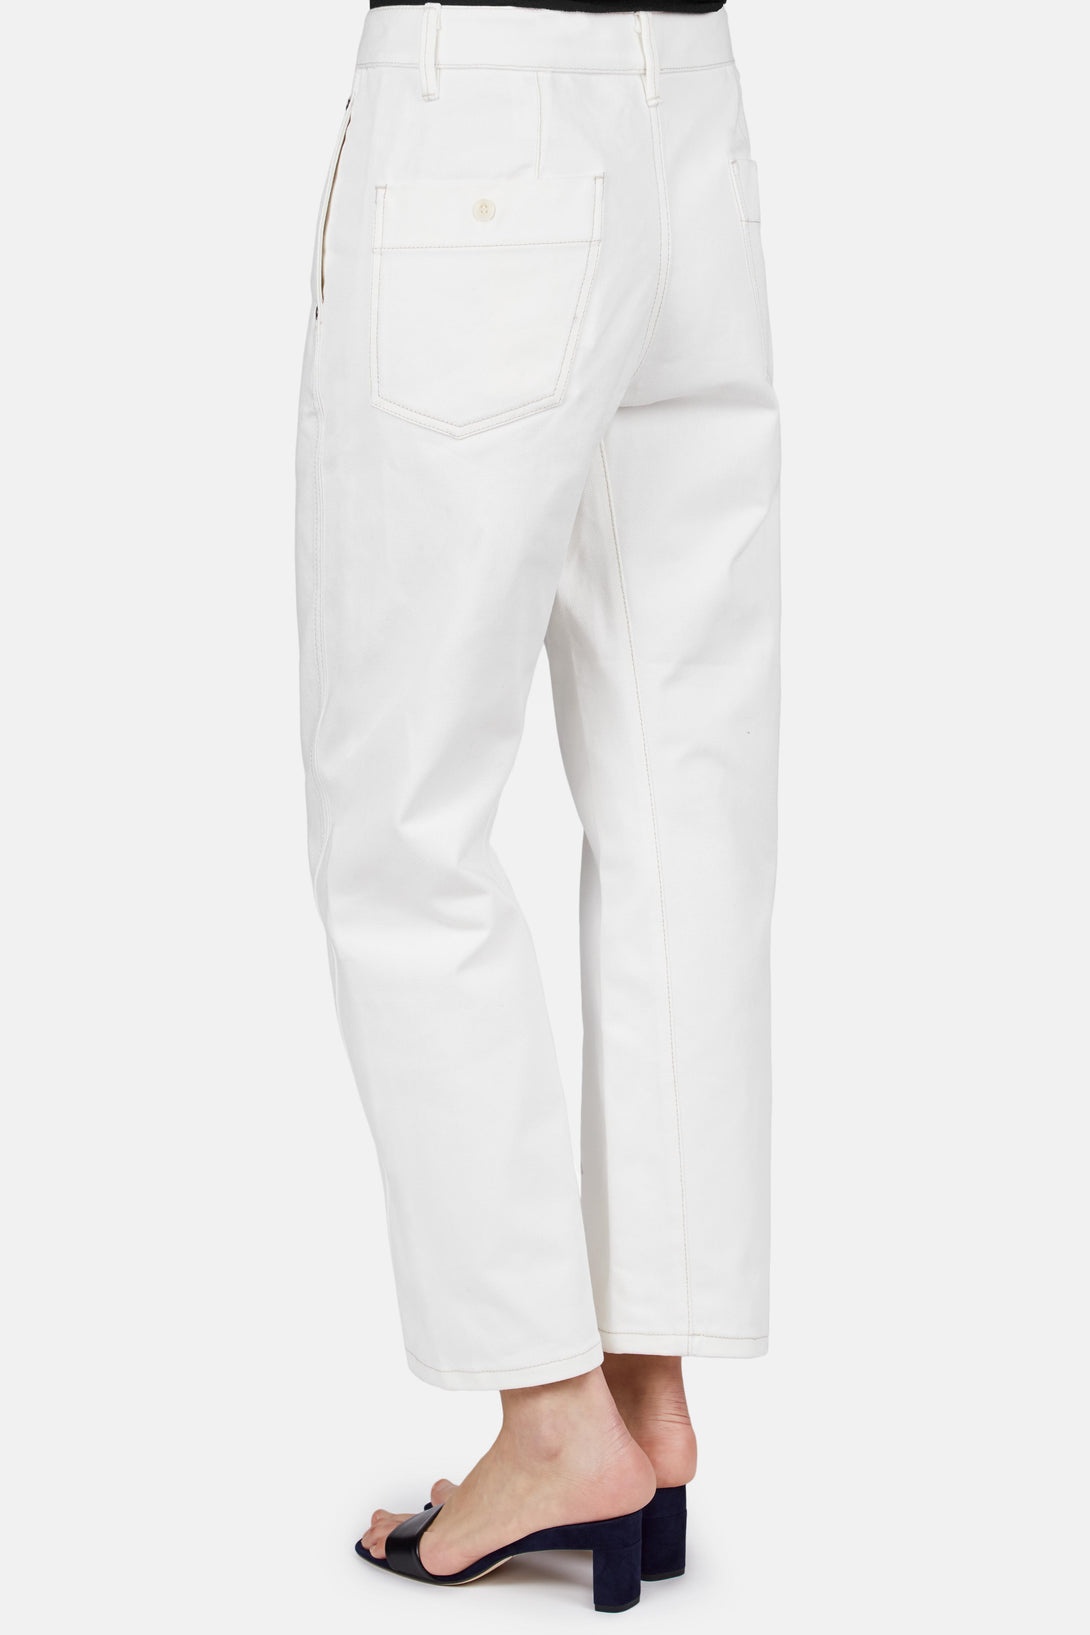 twisted trousers - White Christophe Lemaire 27xWF